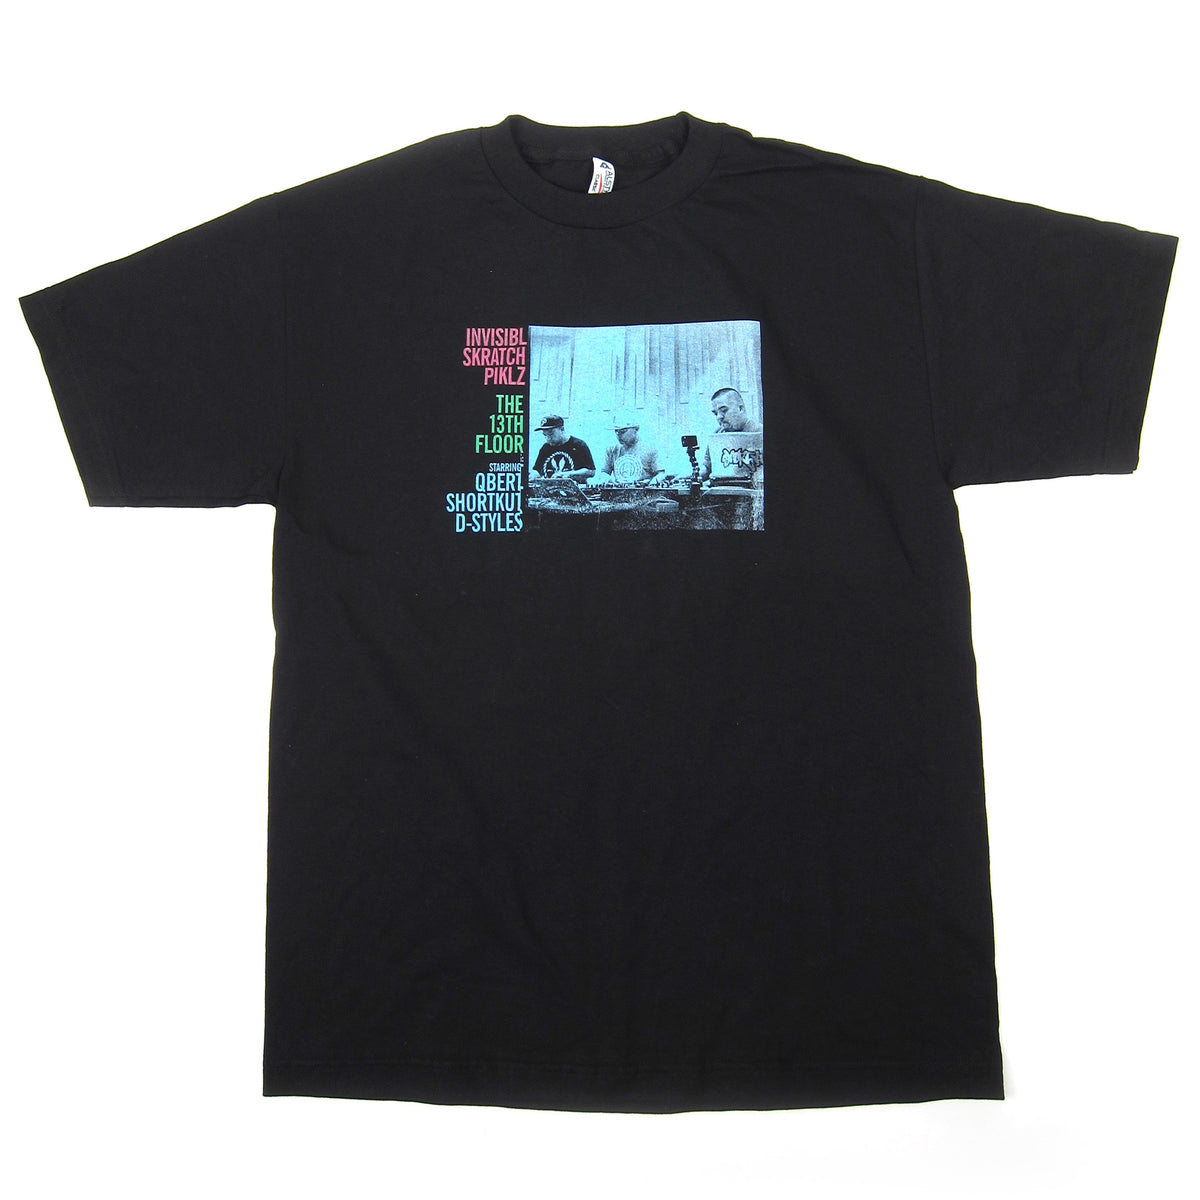 Invisibl Skratch Piklz: The 13th Floor Album Shirt - Black